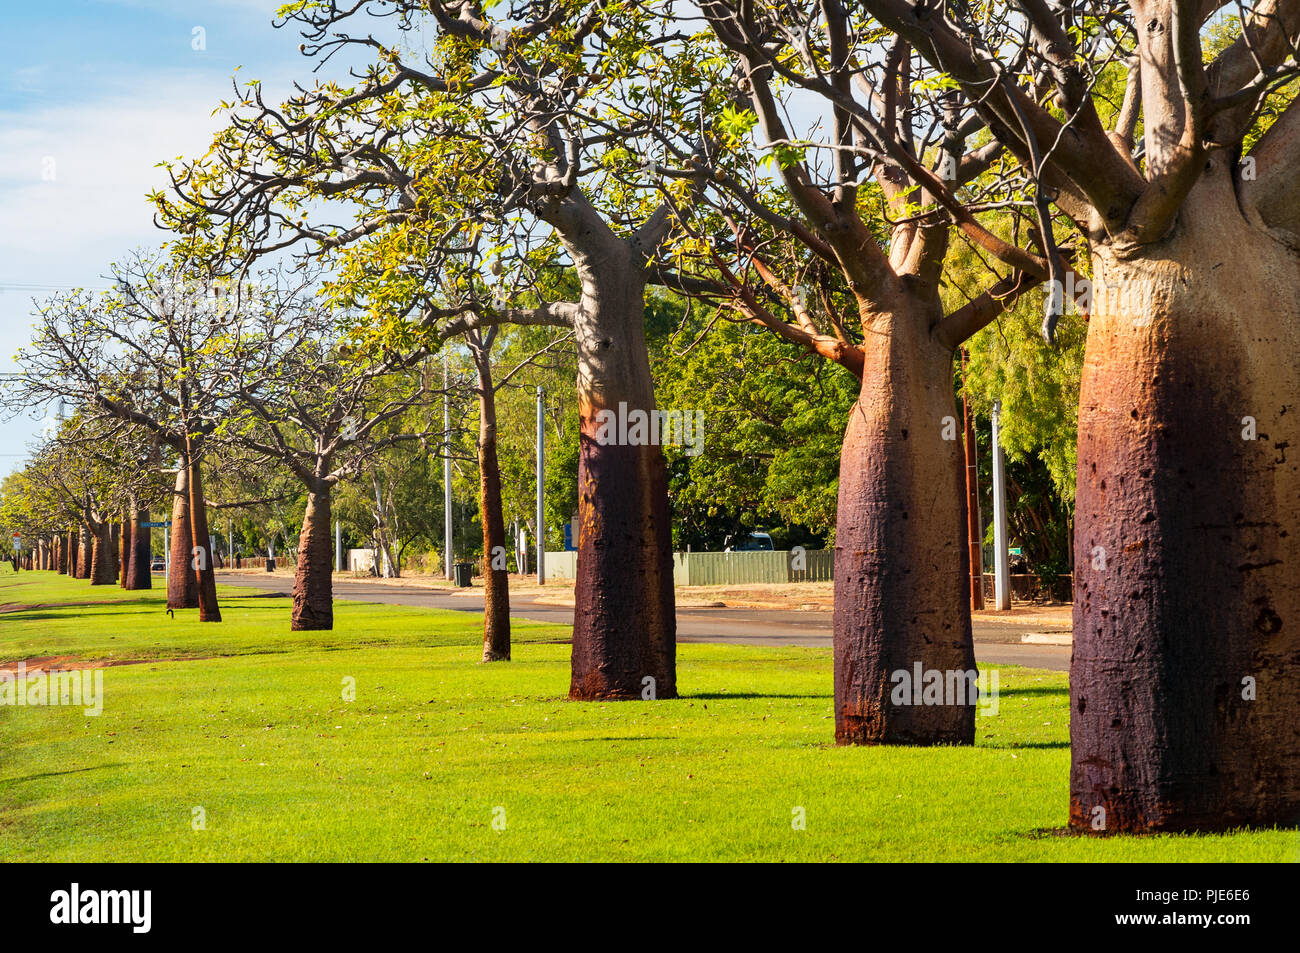 Boab Alley in main street of Derby. - Stock Image